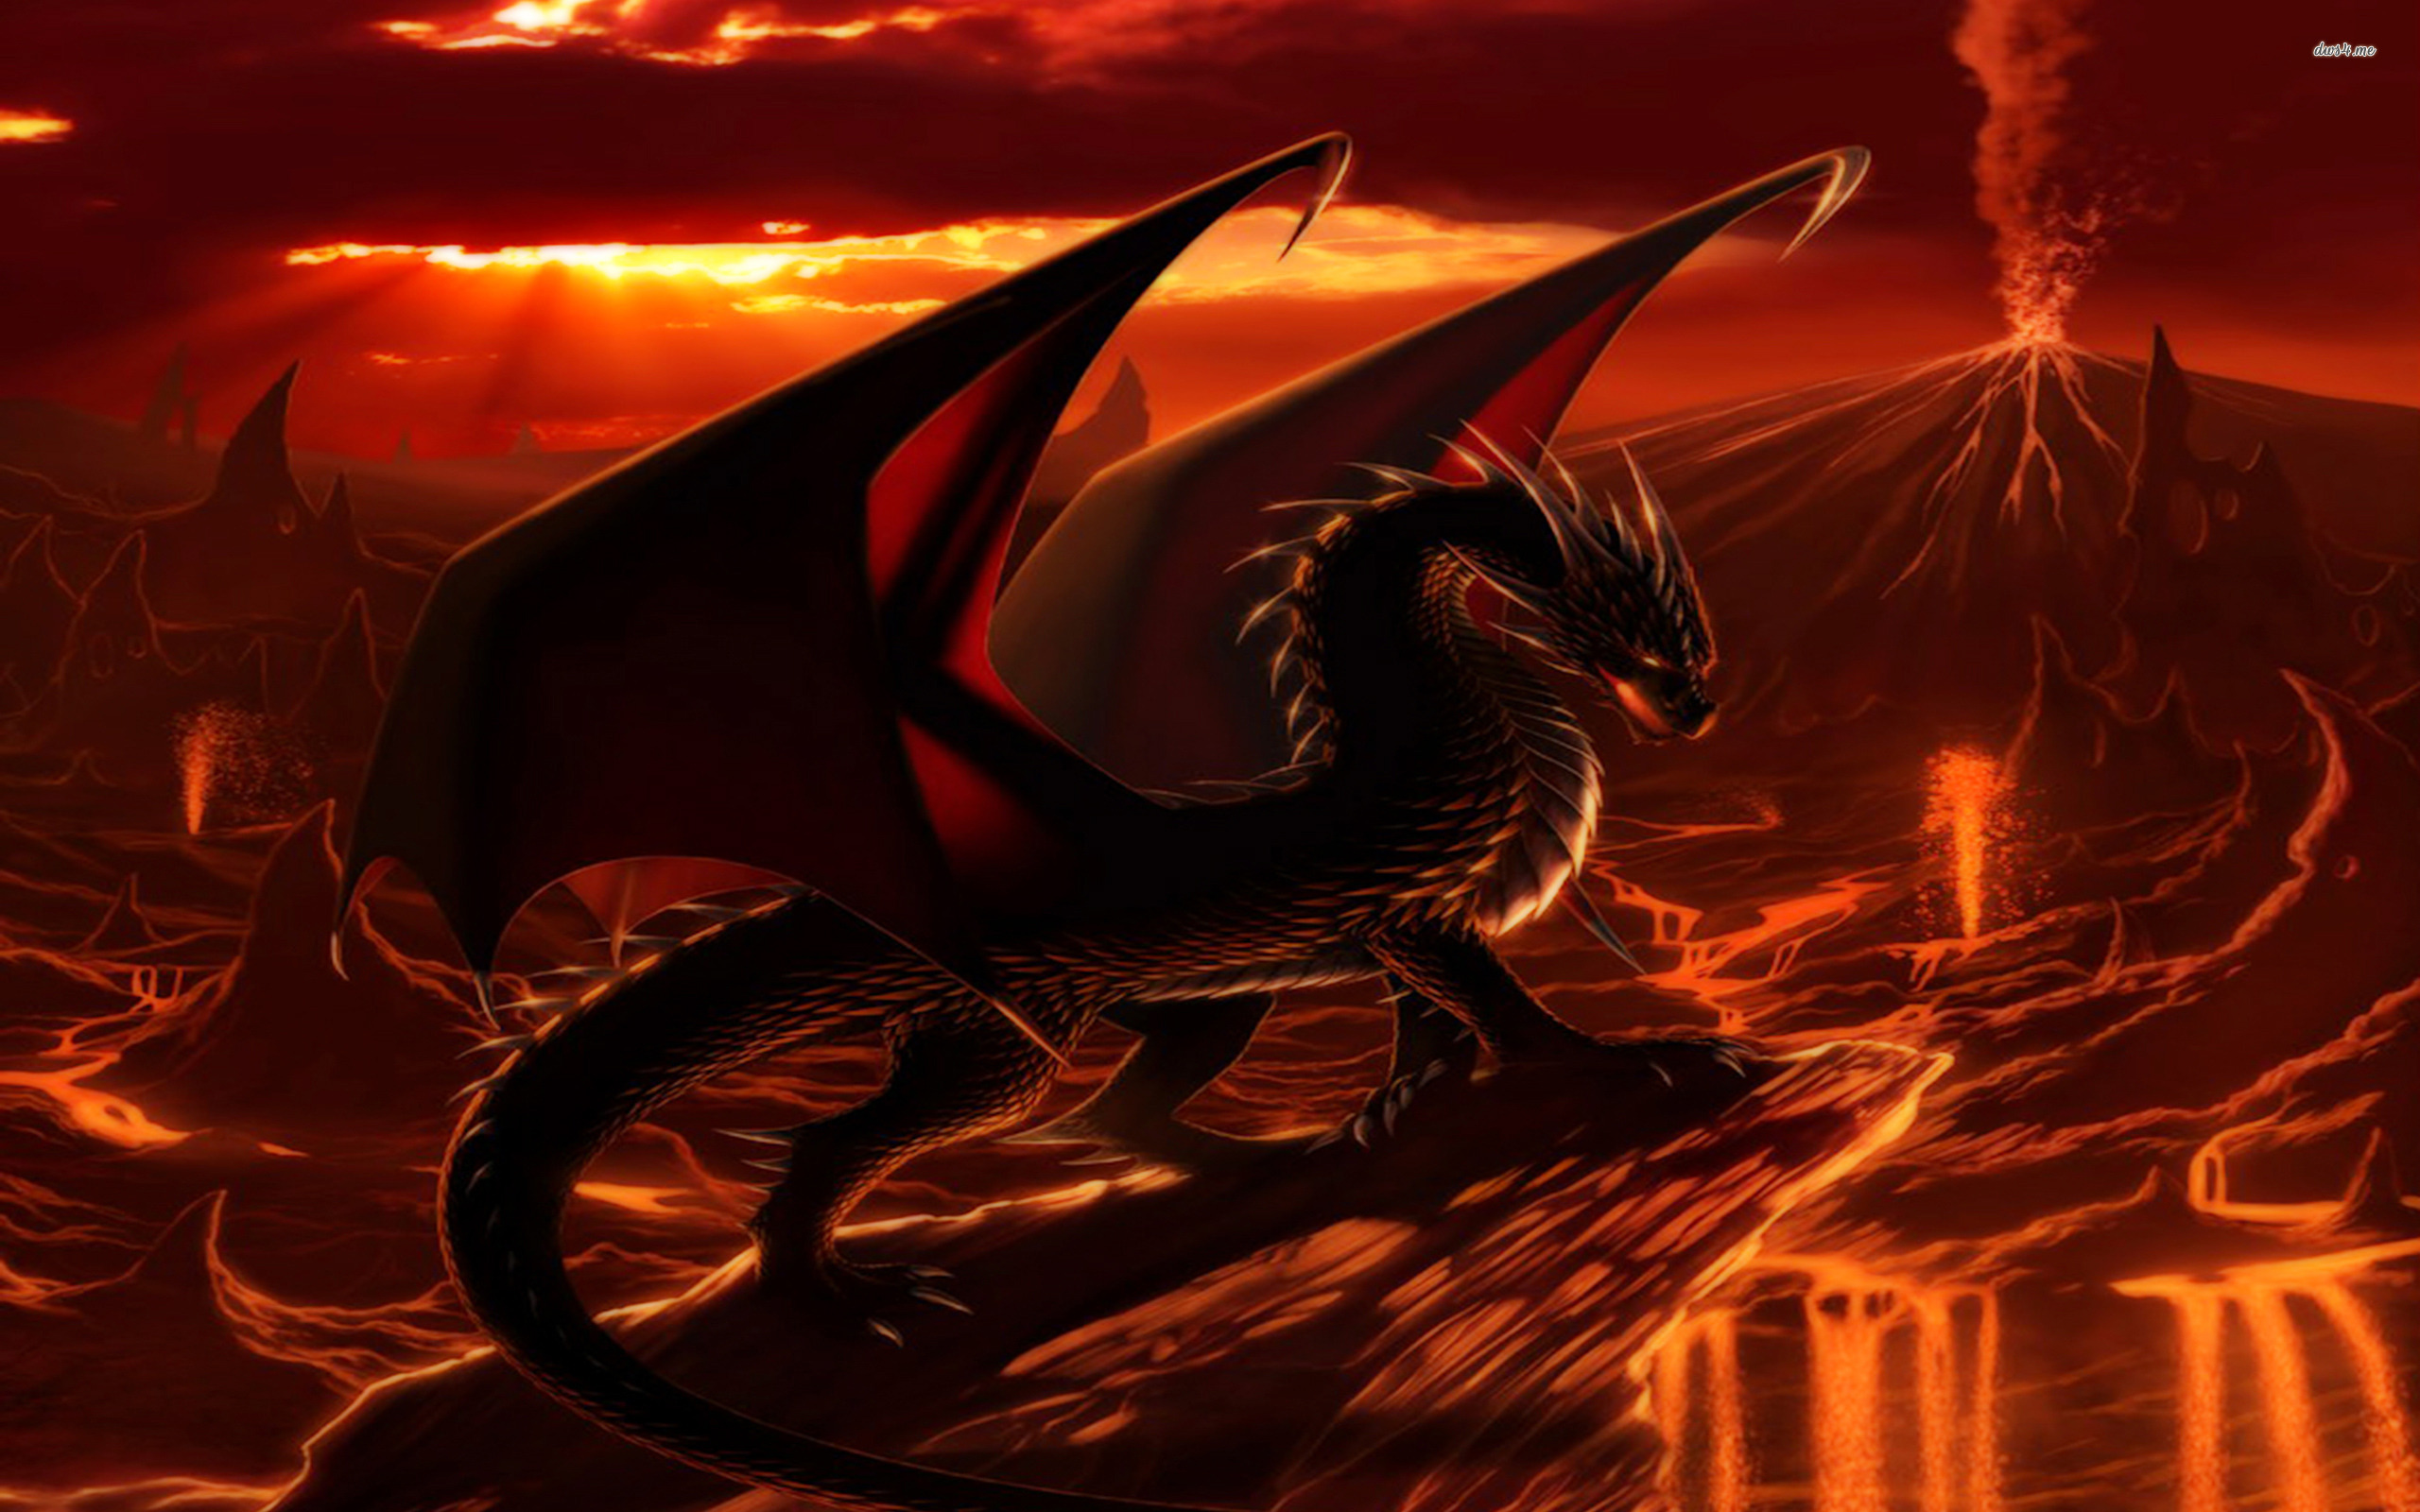 Cool Fire Dragons Wallpaper Dragon Backgrounds 2560x1600